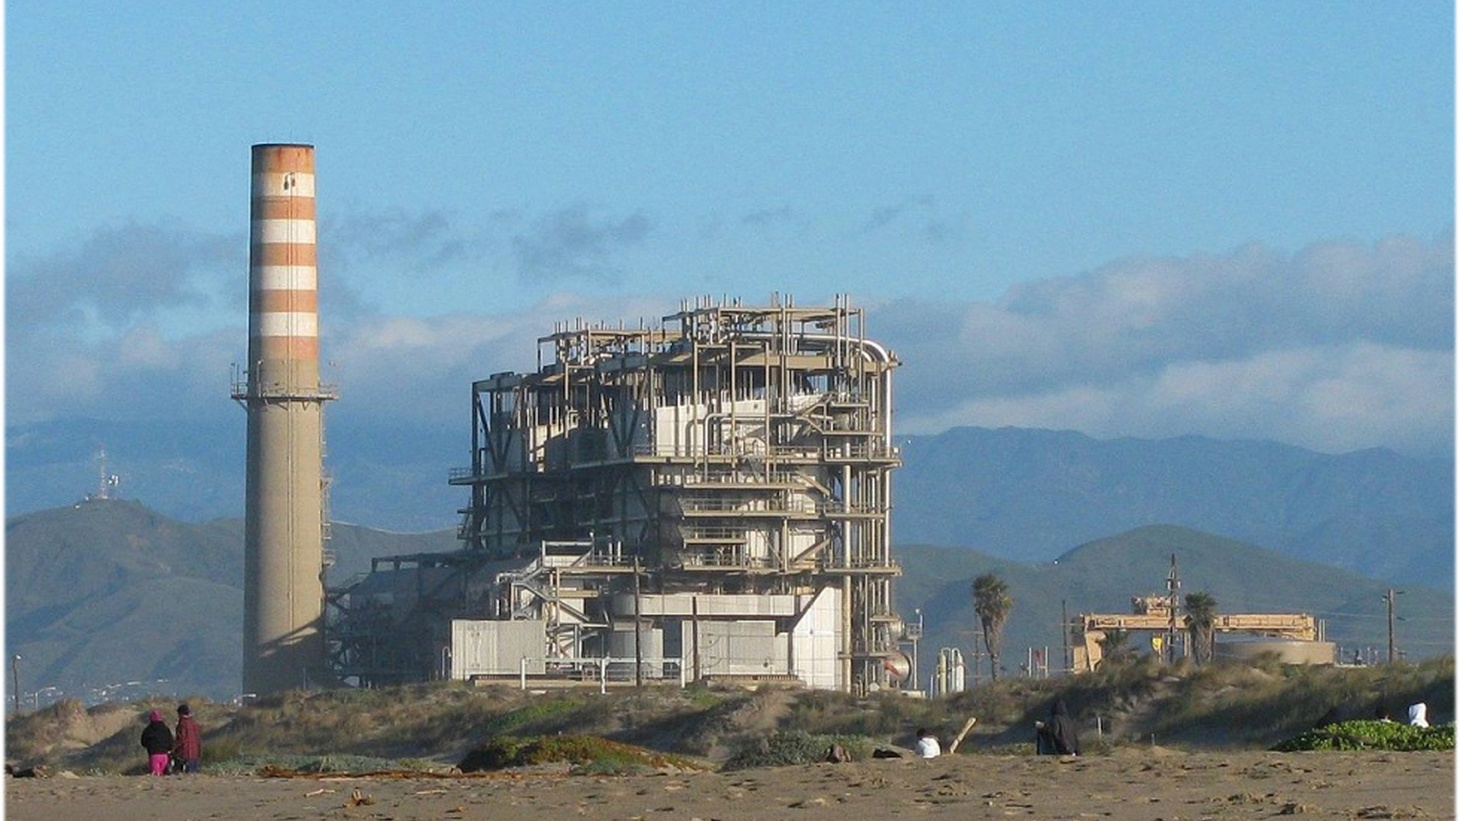 The existing Mandalay natural gas-fired power plant in Oxnard.